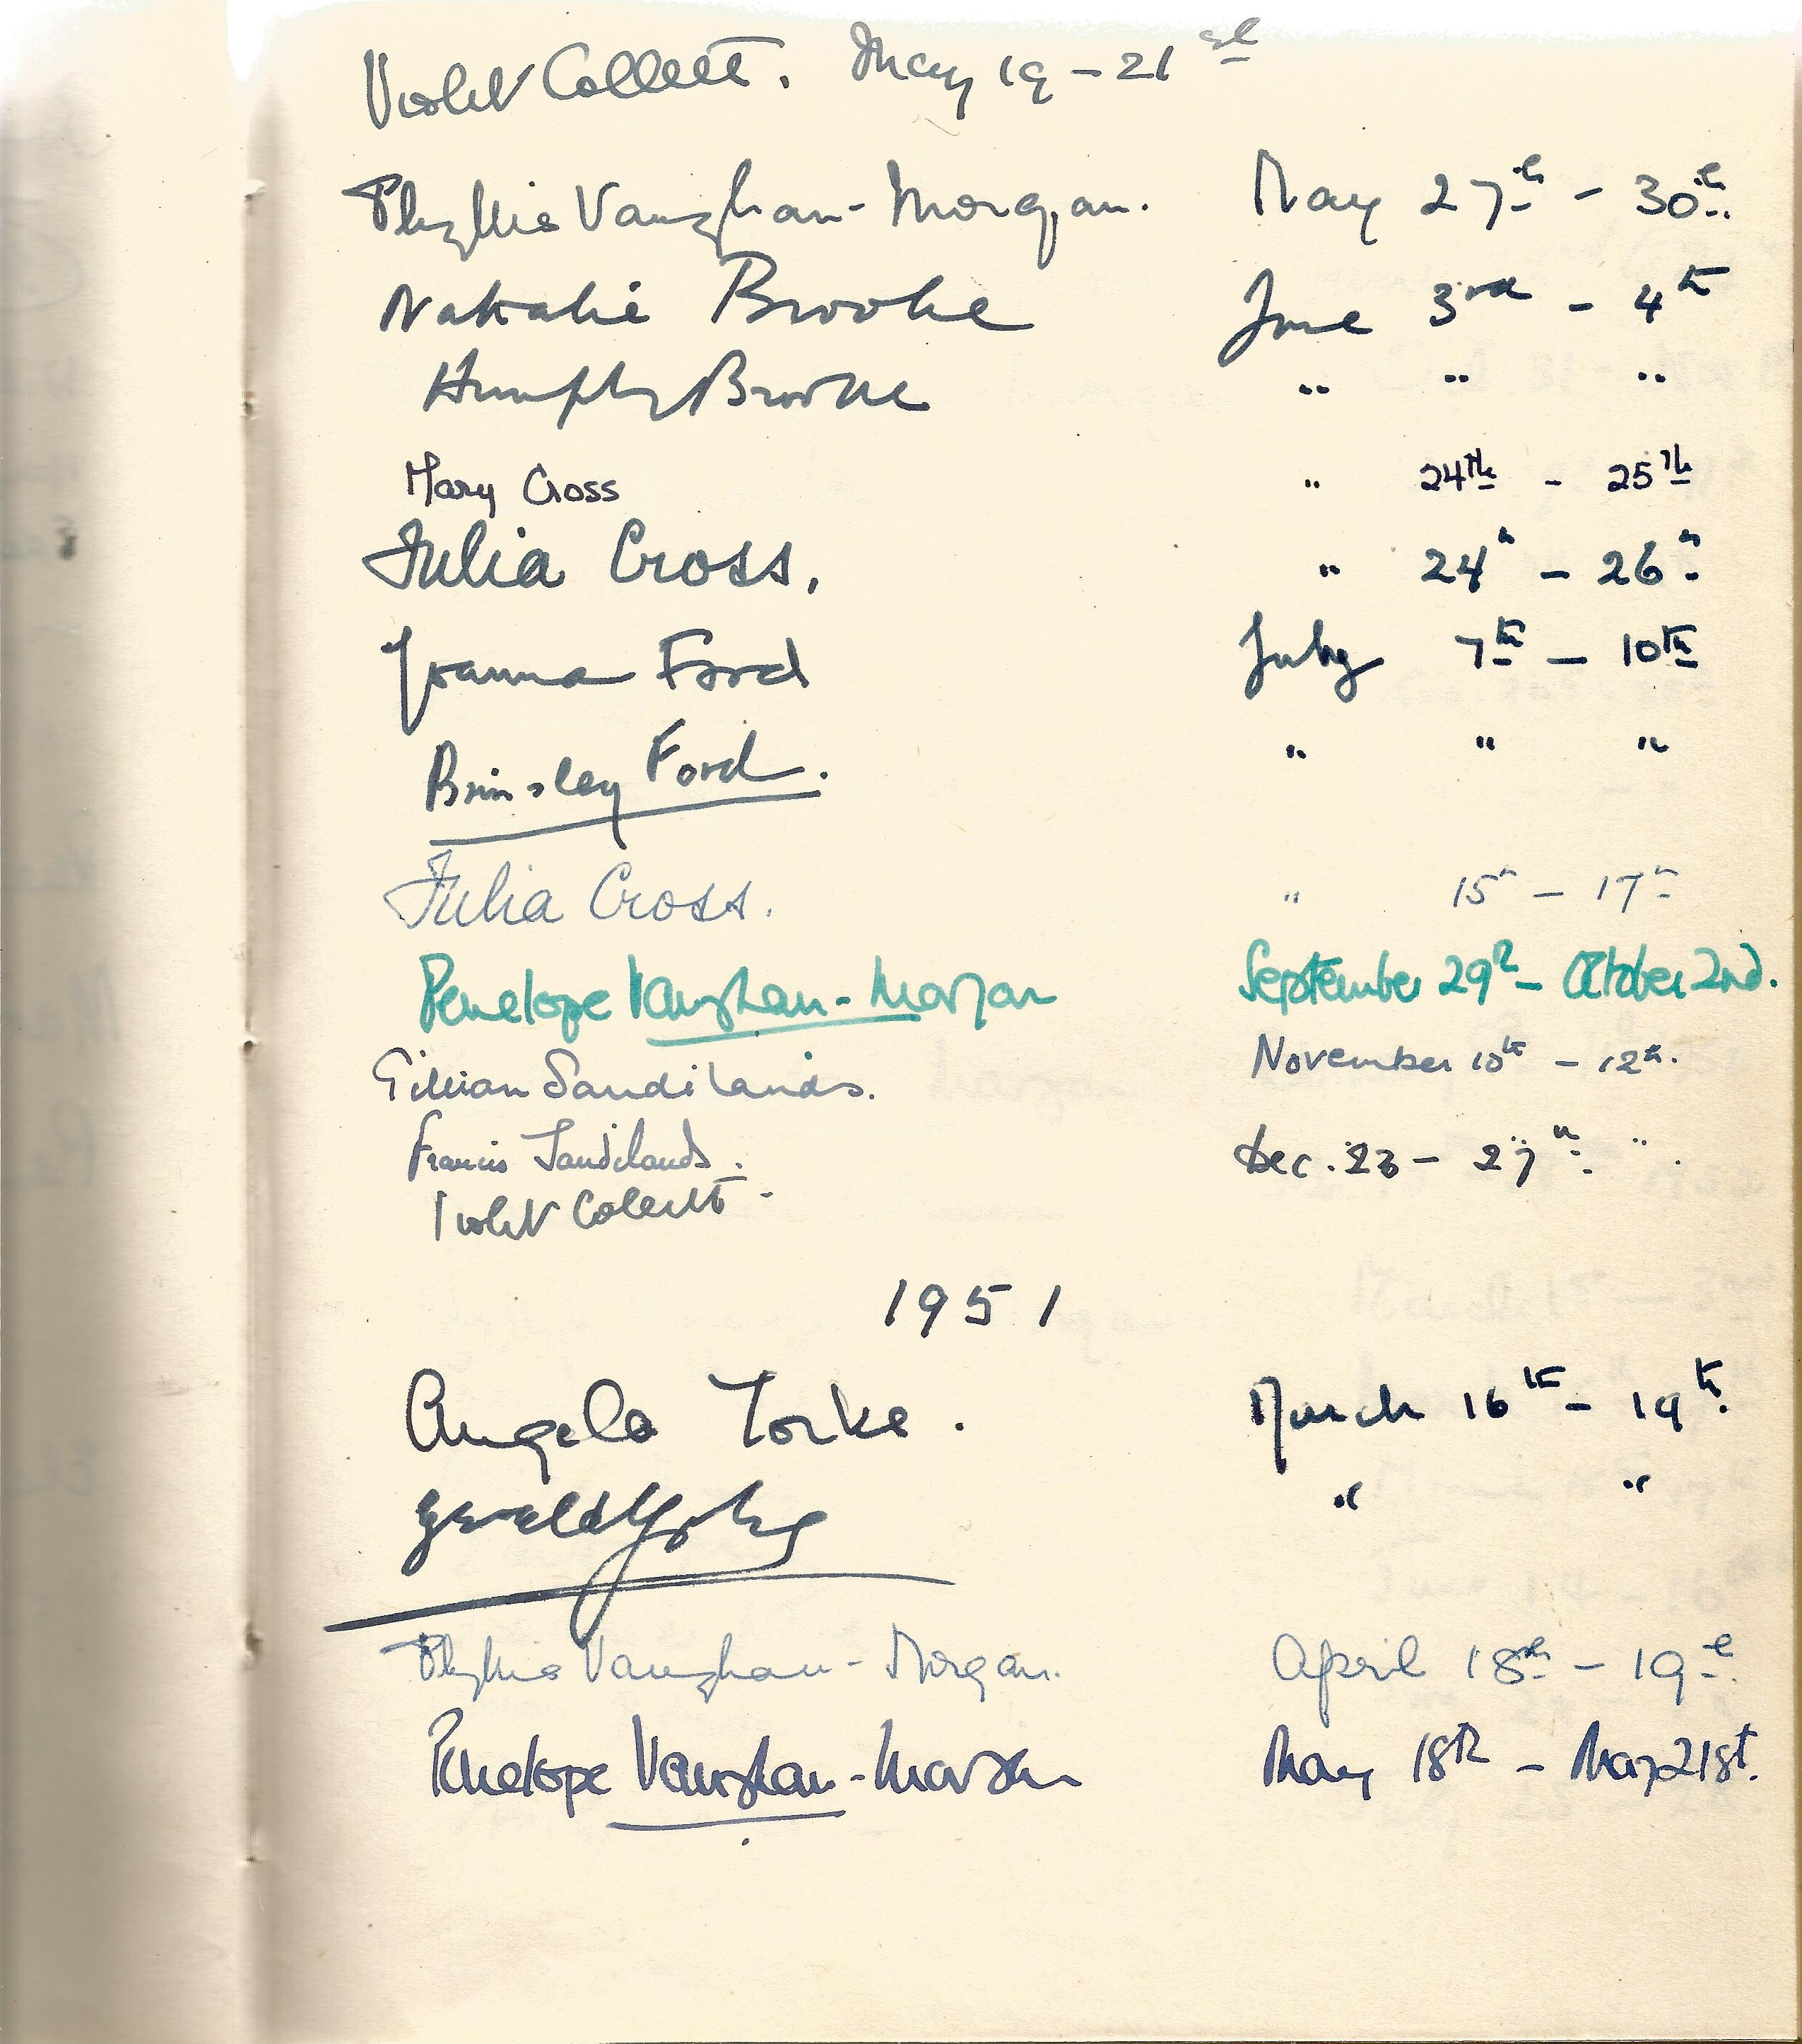 Hardback Book Expensively made visitors Book with slipcase JVM, EVM & 1949 in Gold Lettering on - Image 3 of 8